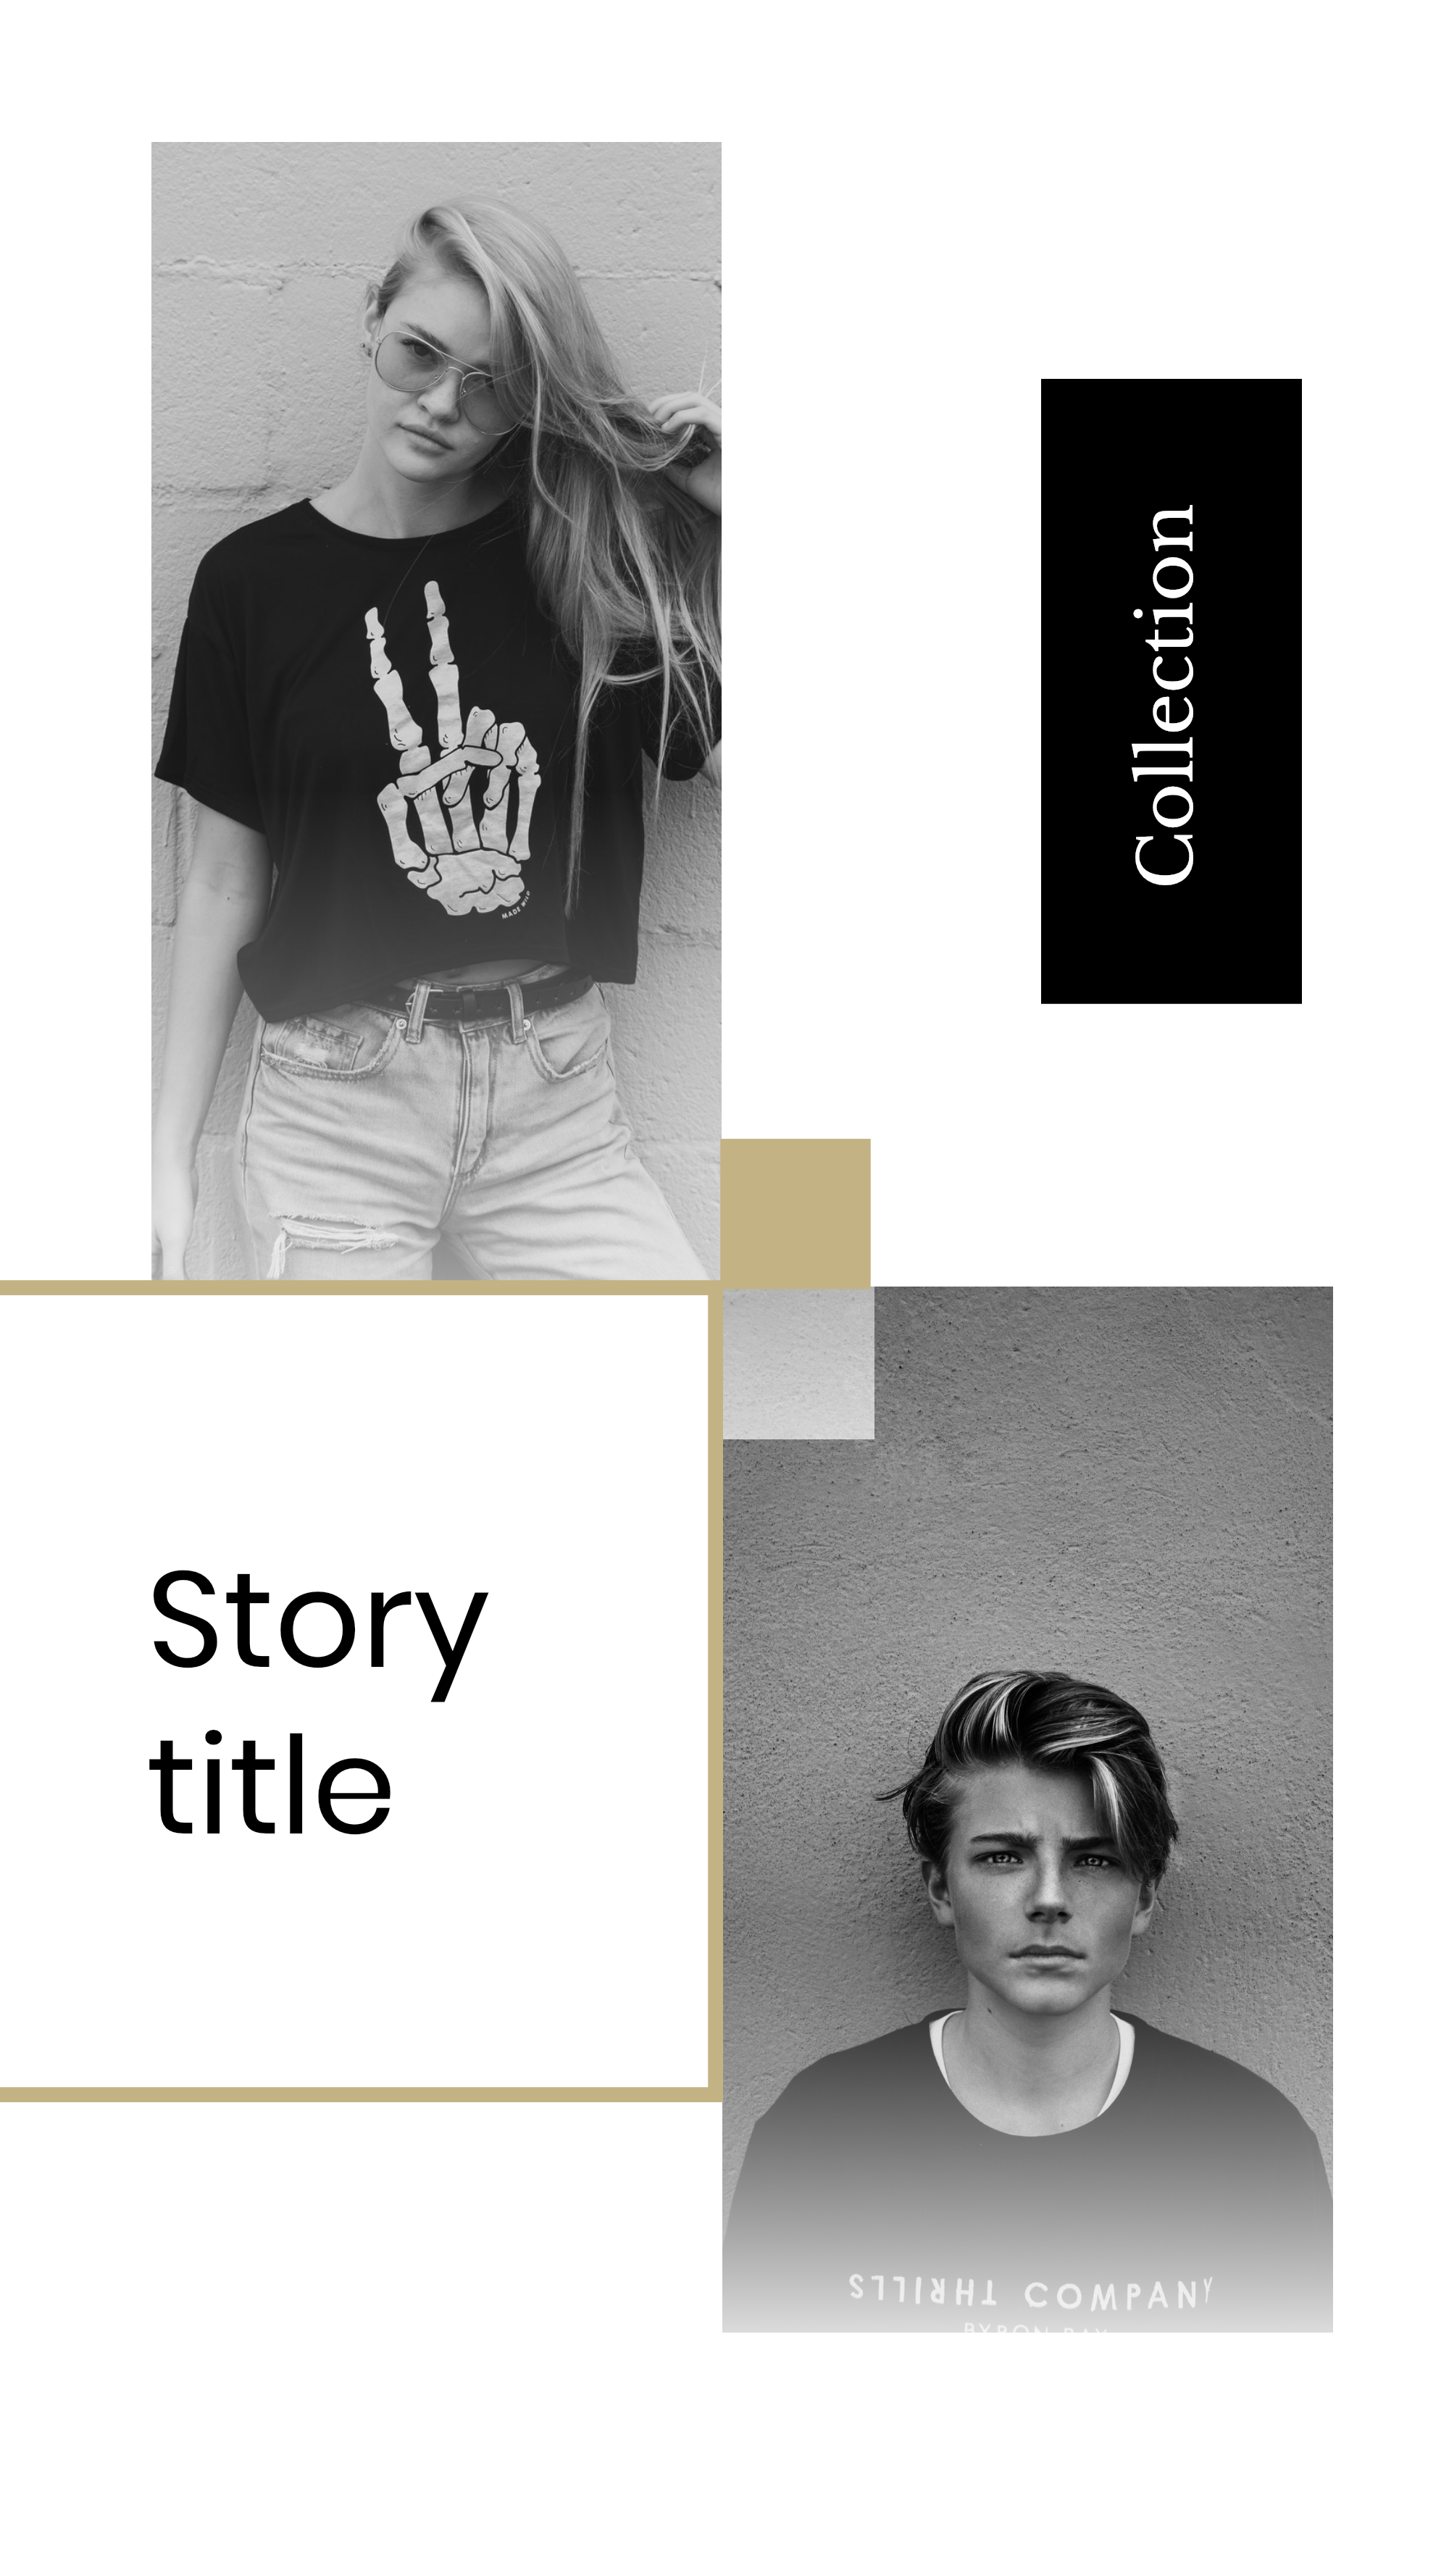 #minimalist collection - Collection Story title Instagram Story Template